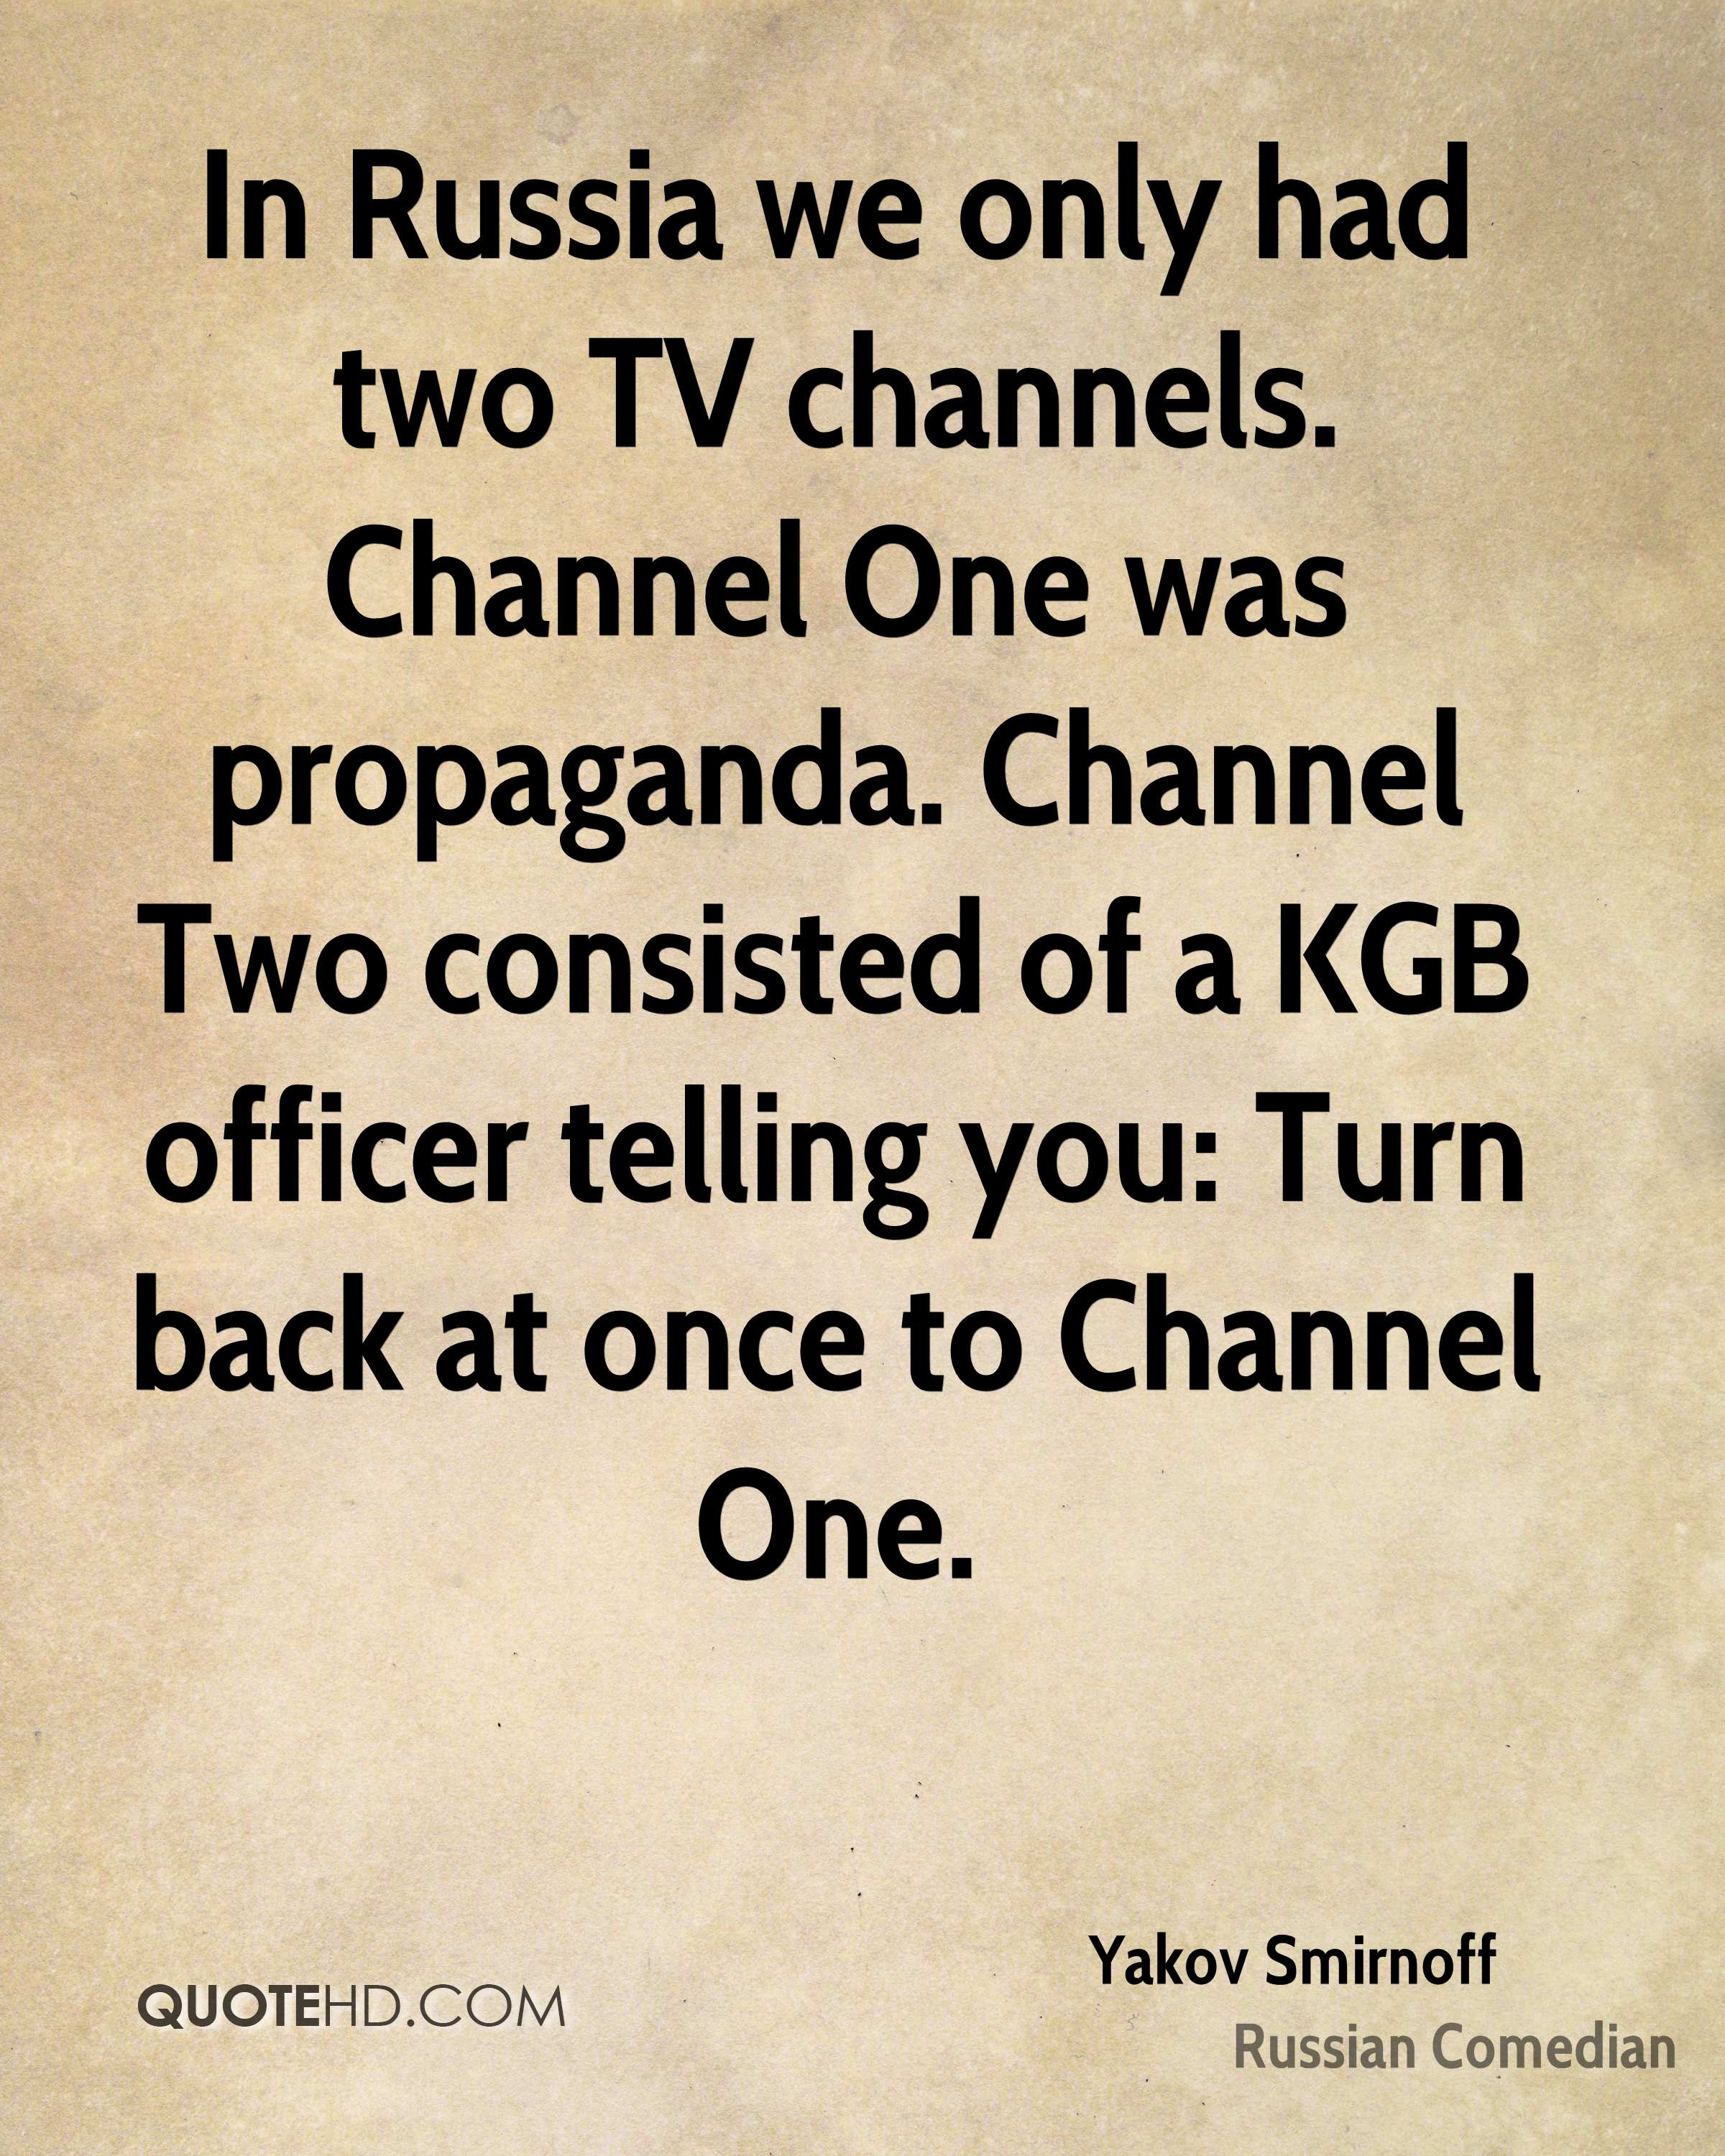 In Russia we only had two TV channels. Channel One was propaganda. Channel Two consisted of a KGB officer telling you: Turn back at once to Channel One.